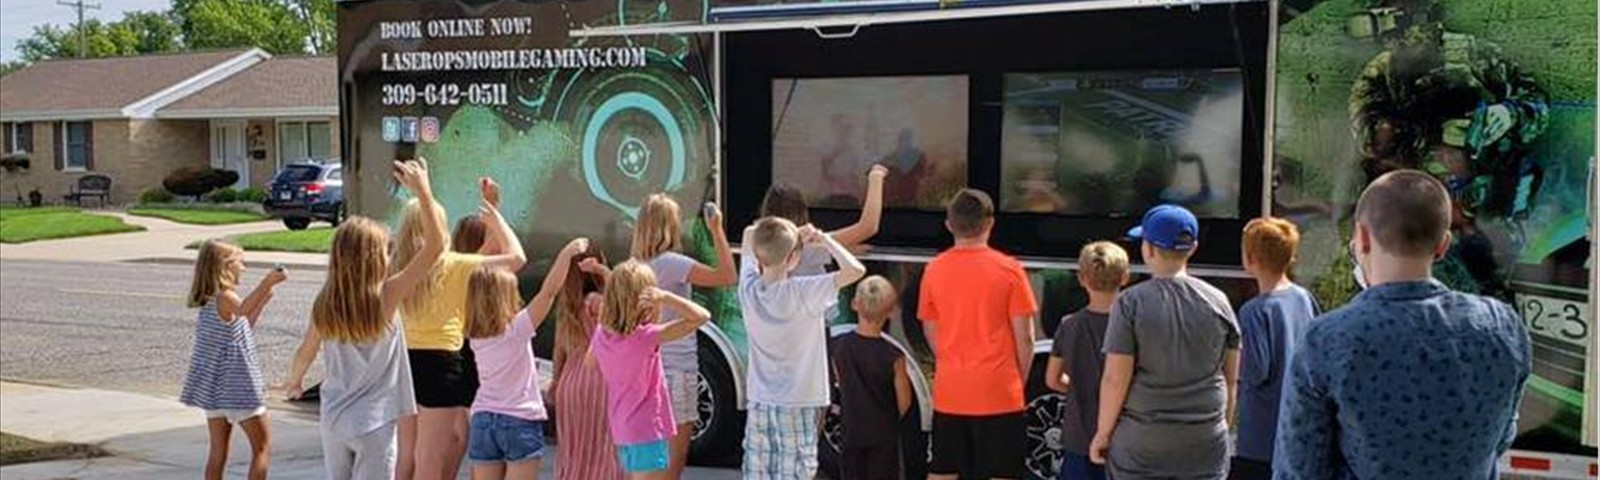 peoria-illinois-video-game-truck-outside-gaming